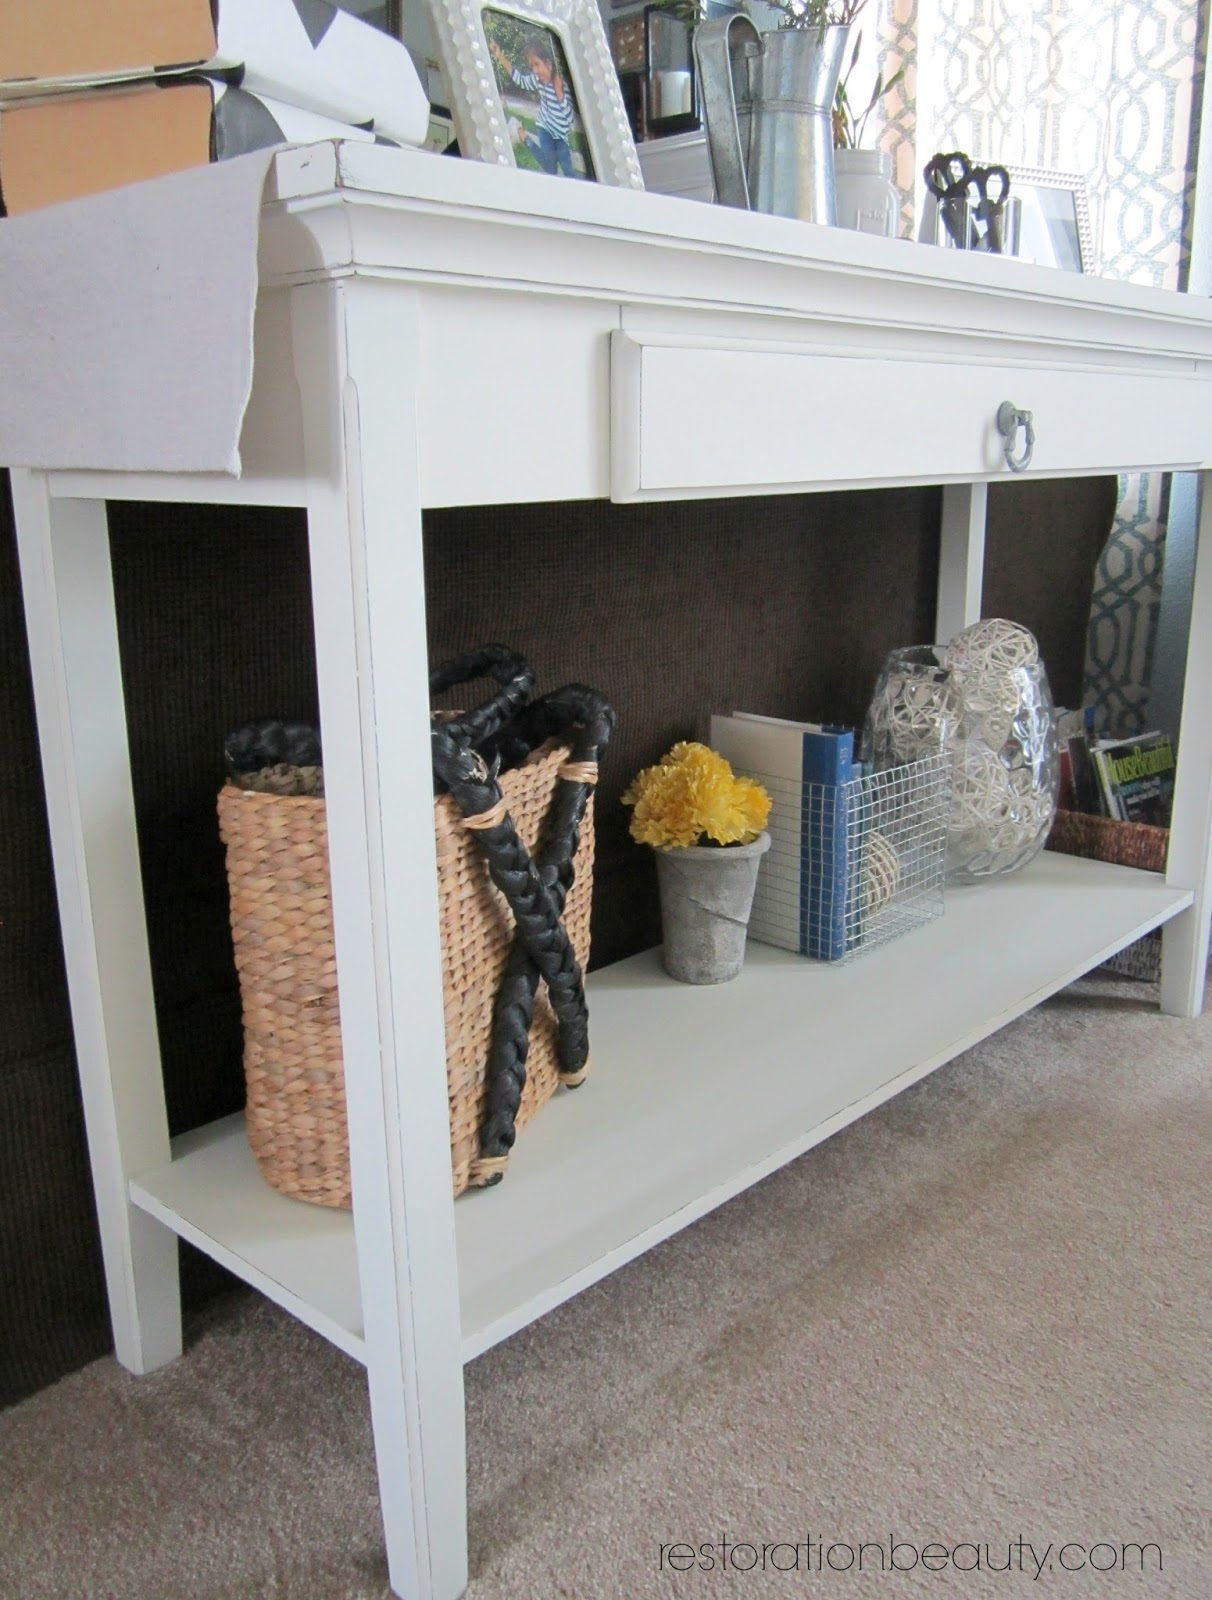 Restoration beauty sofa table makeover using diy chalk paint sofa table makeover using diy chalk paint geotapseo Images